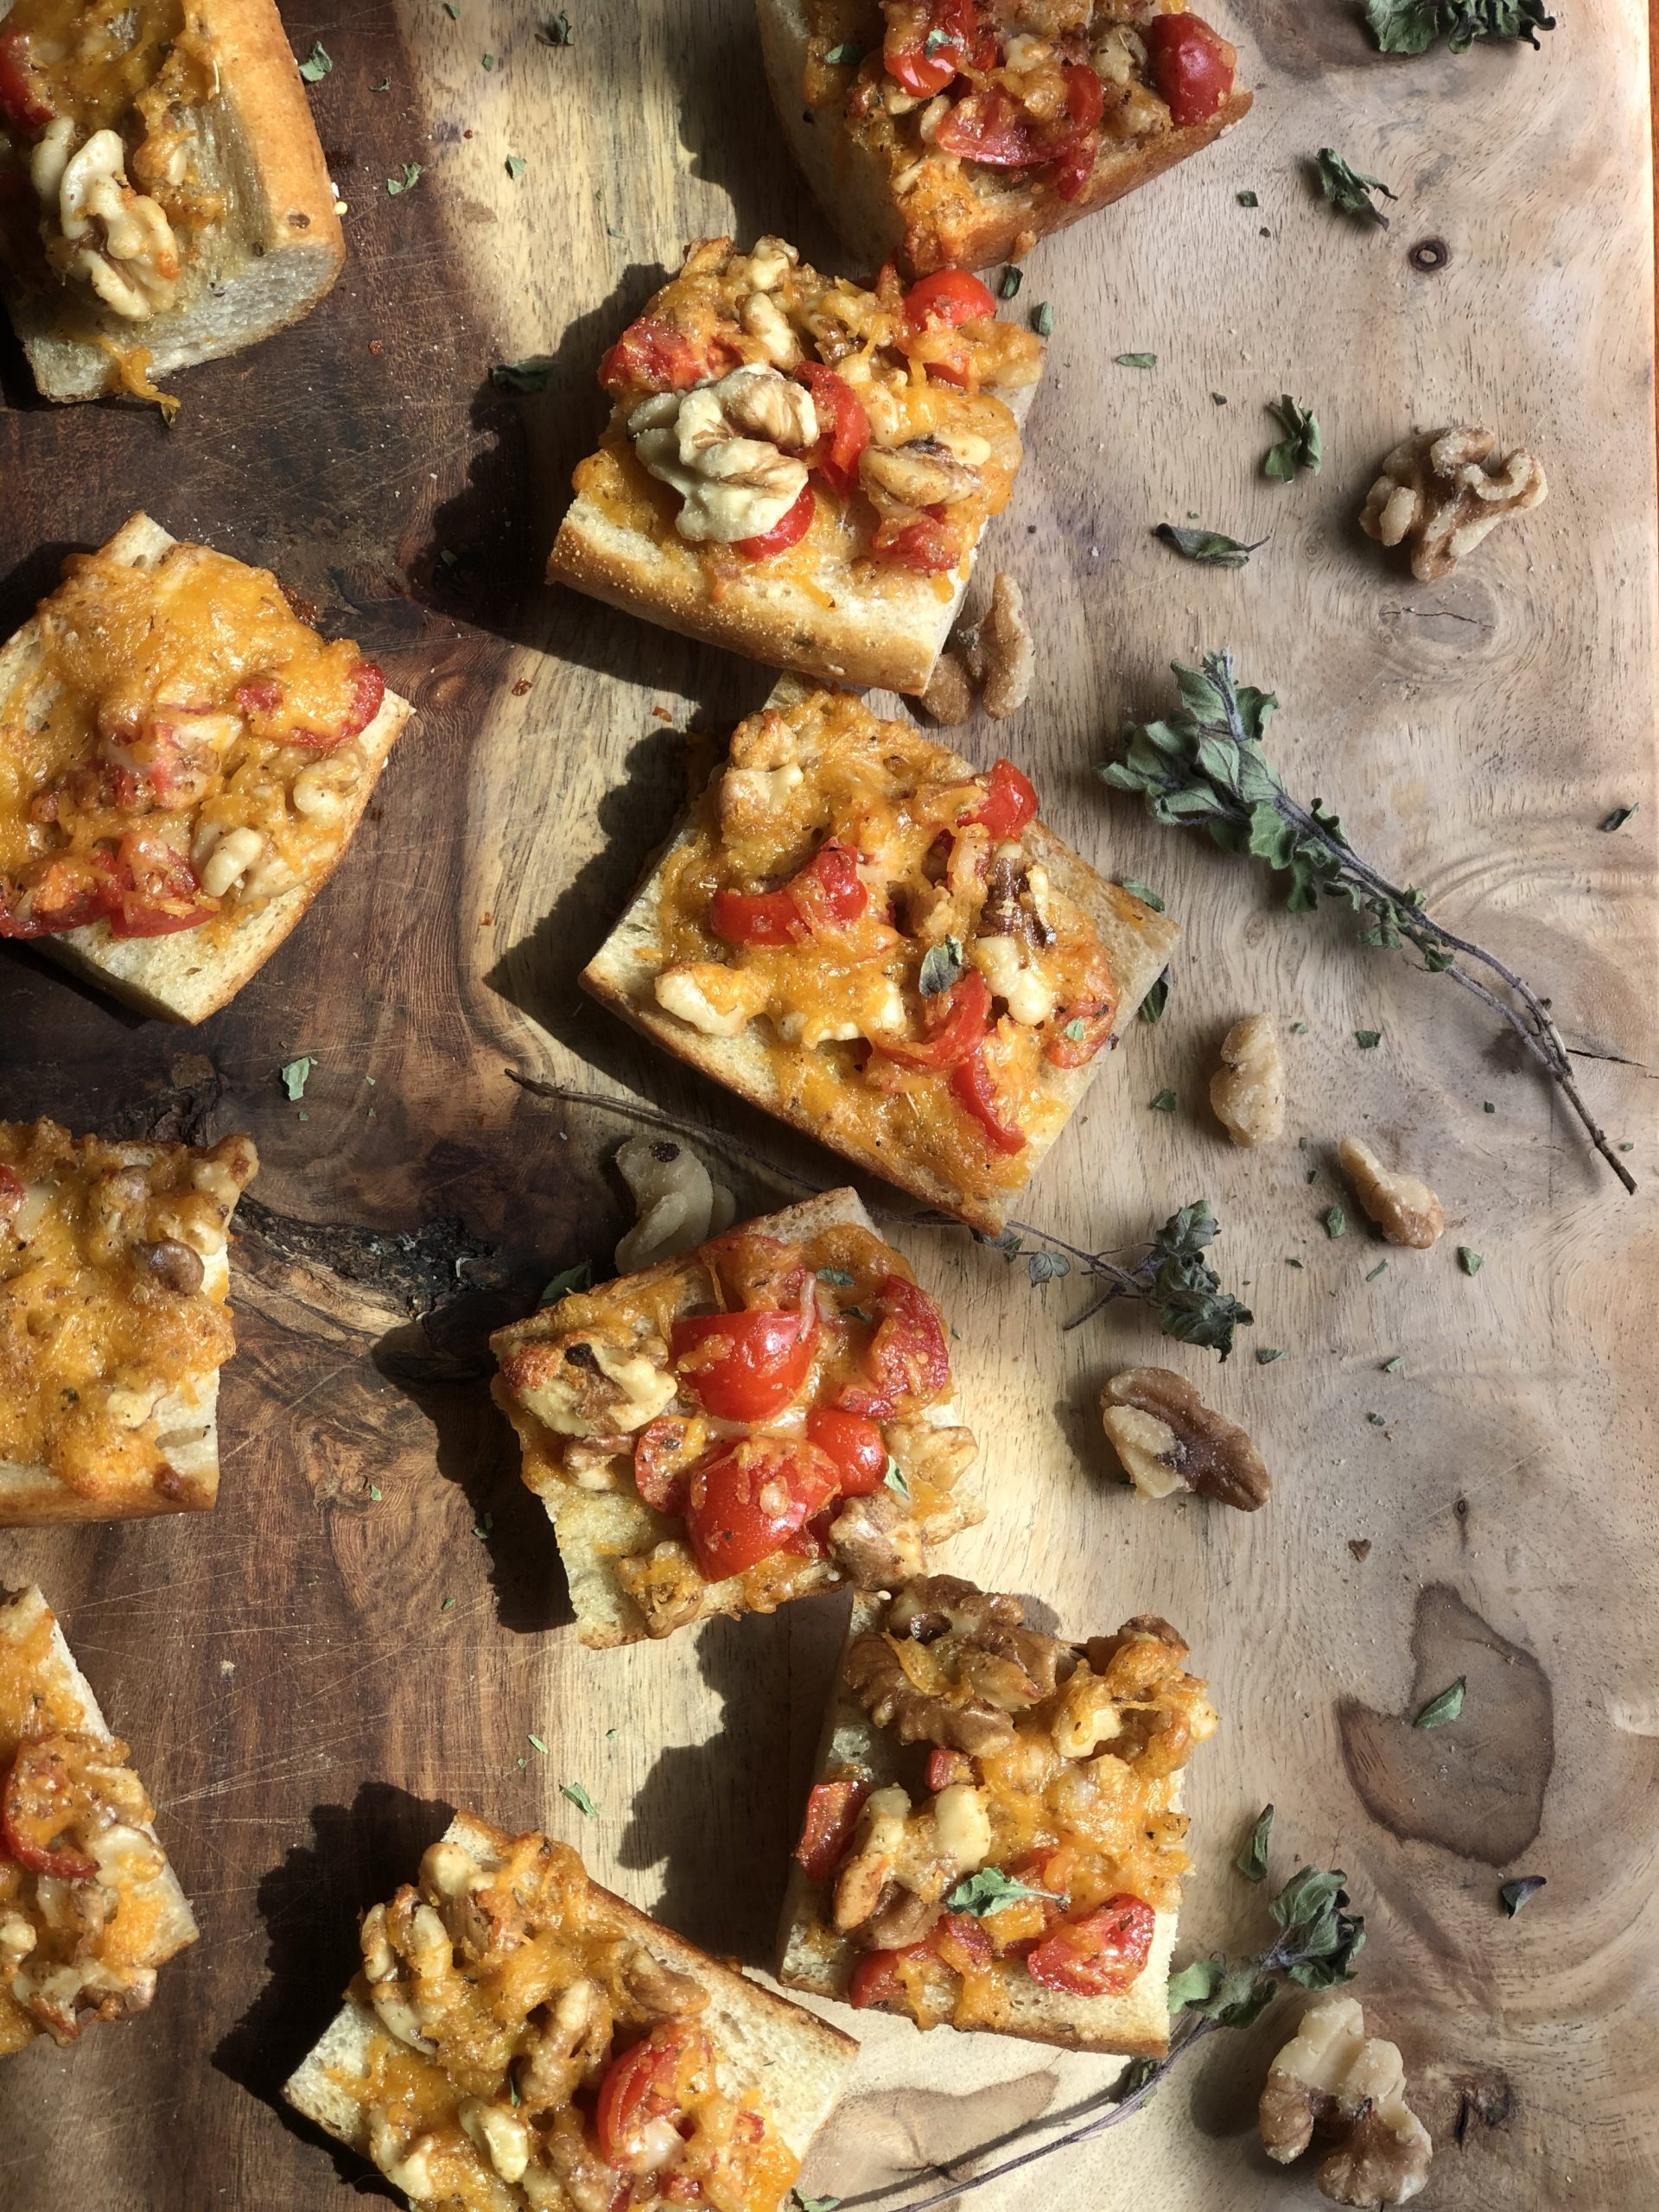 walnut cheese crostinis on a wooden board